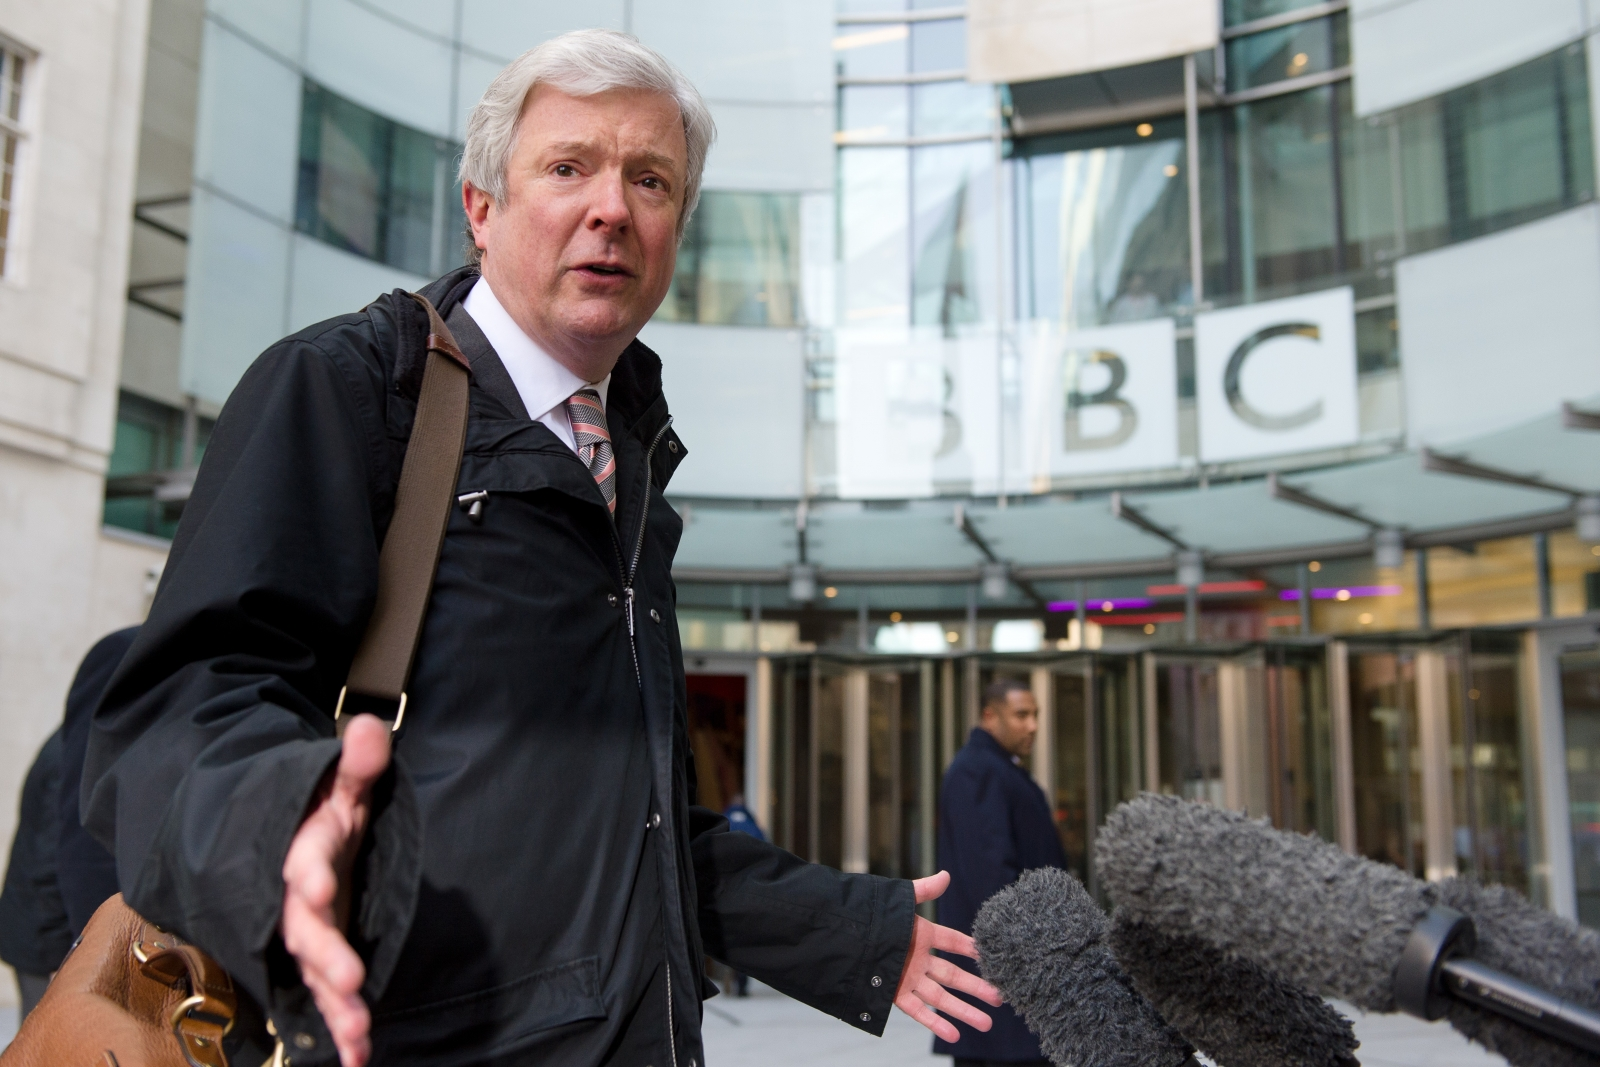 Tony Hall at the BBC HQ